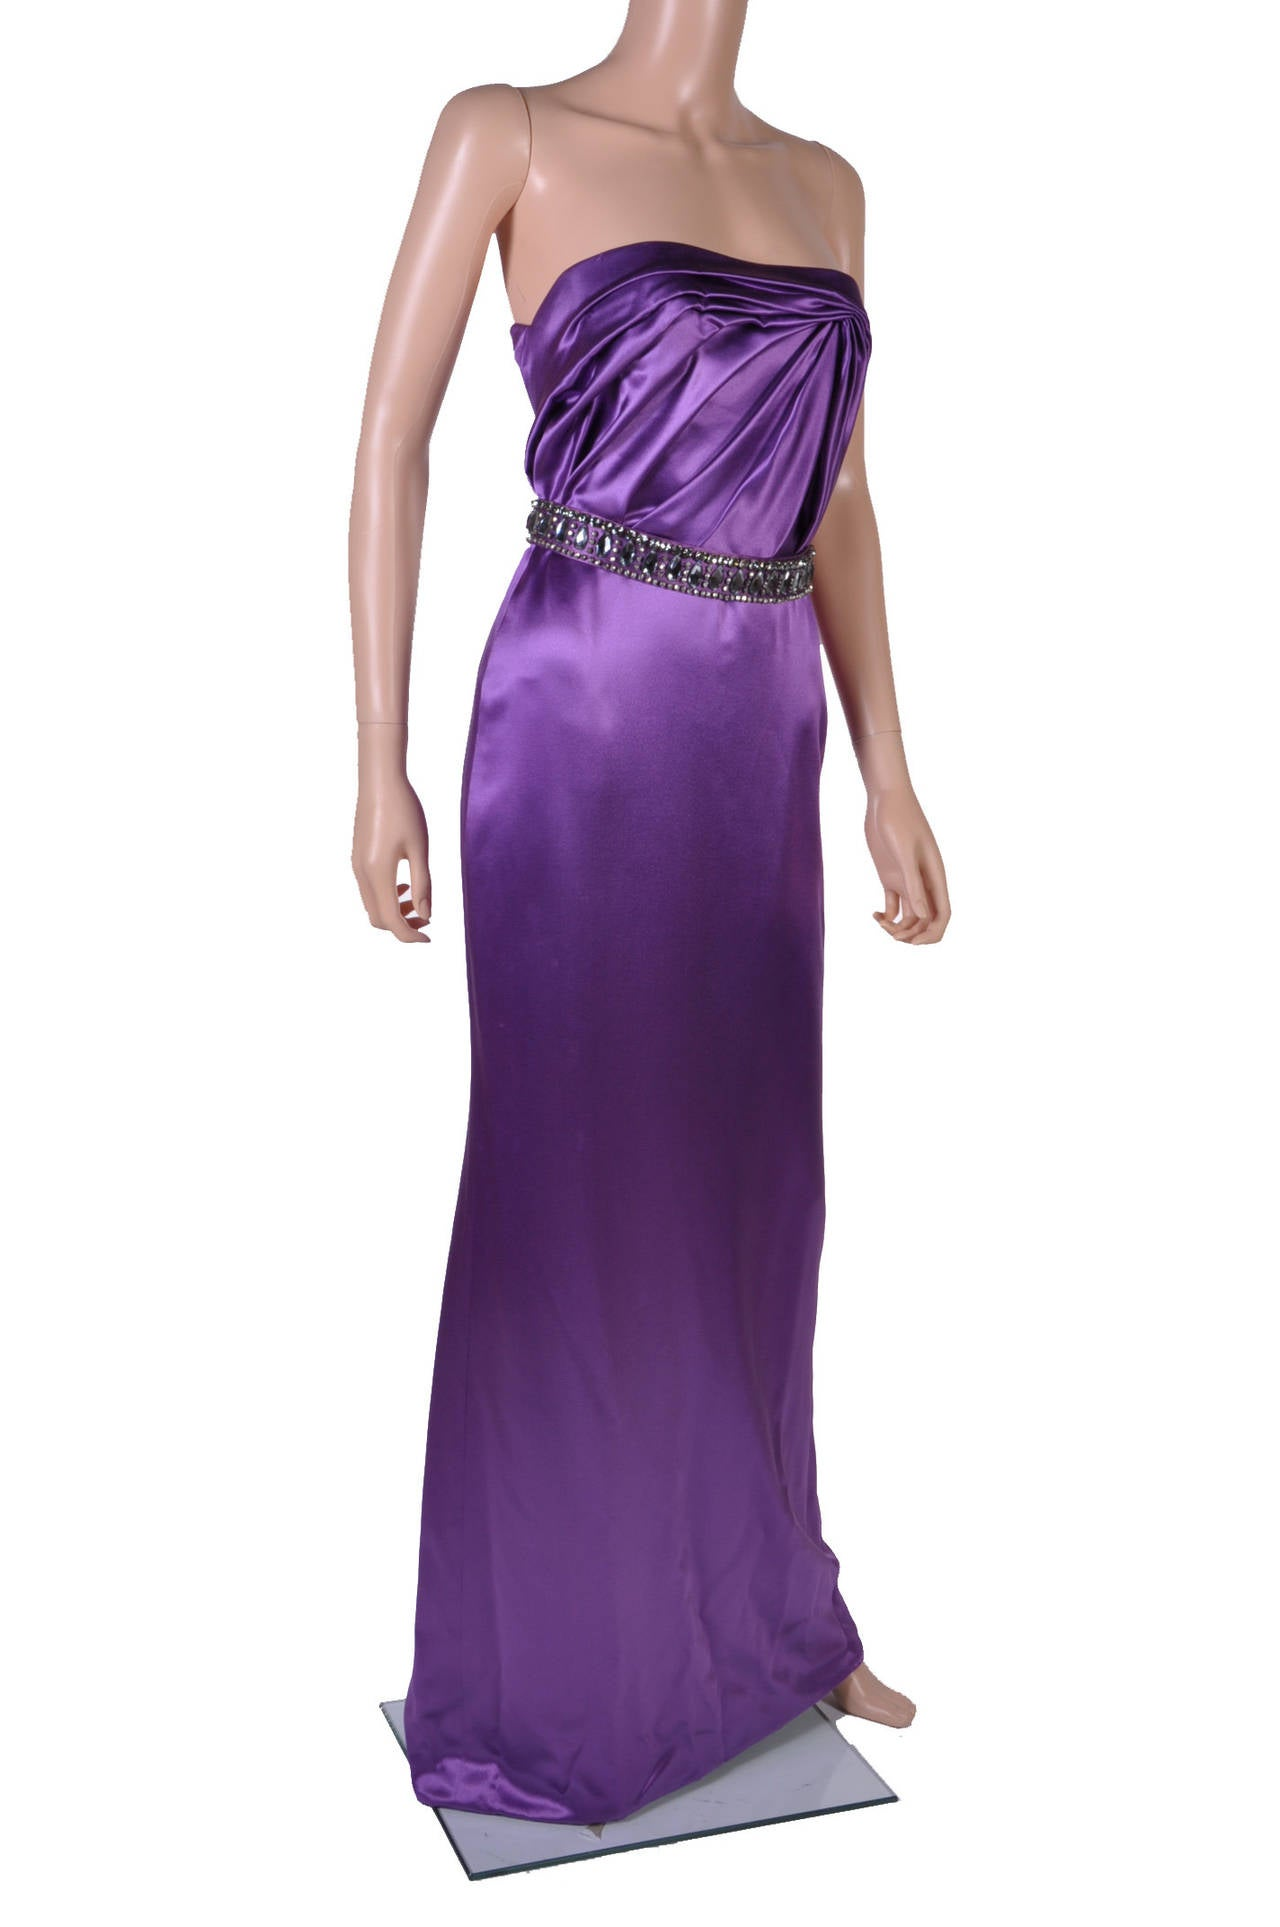 New VERSACE EMBELLISHED PURPLE AMETHYST STRAPLESS GOWN 2